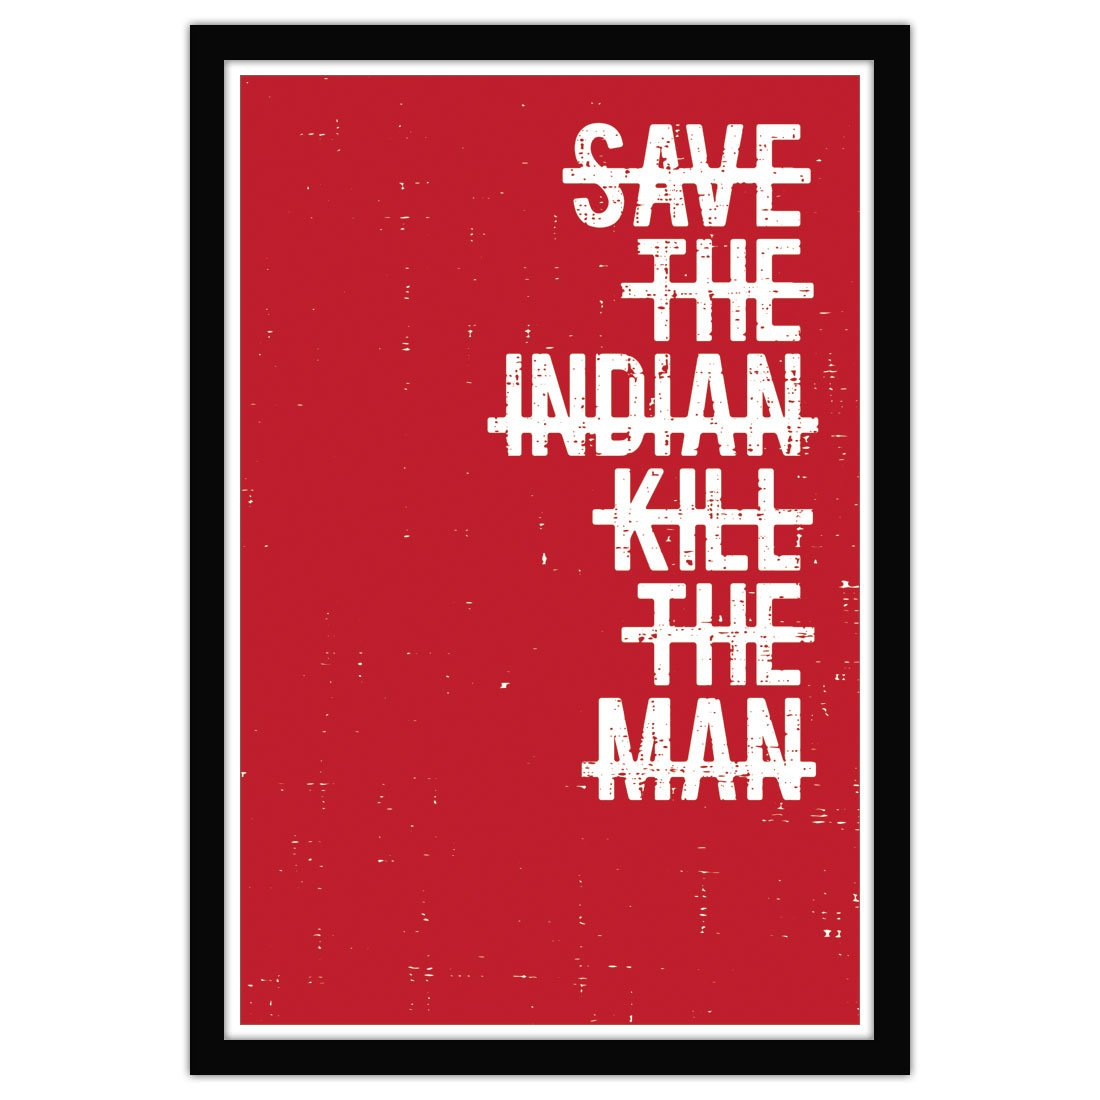 David Bernie Shop Prints Posters Fine Art Save the Indian